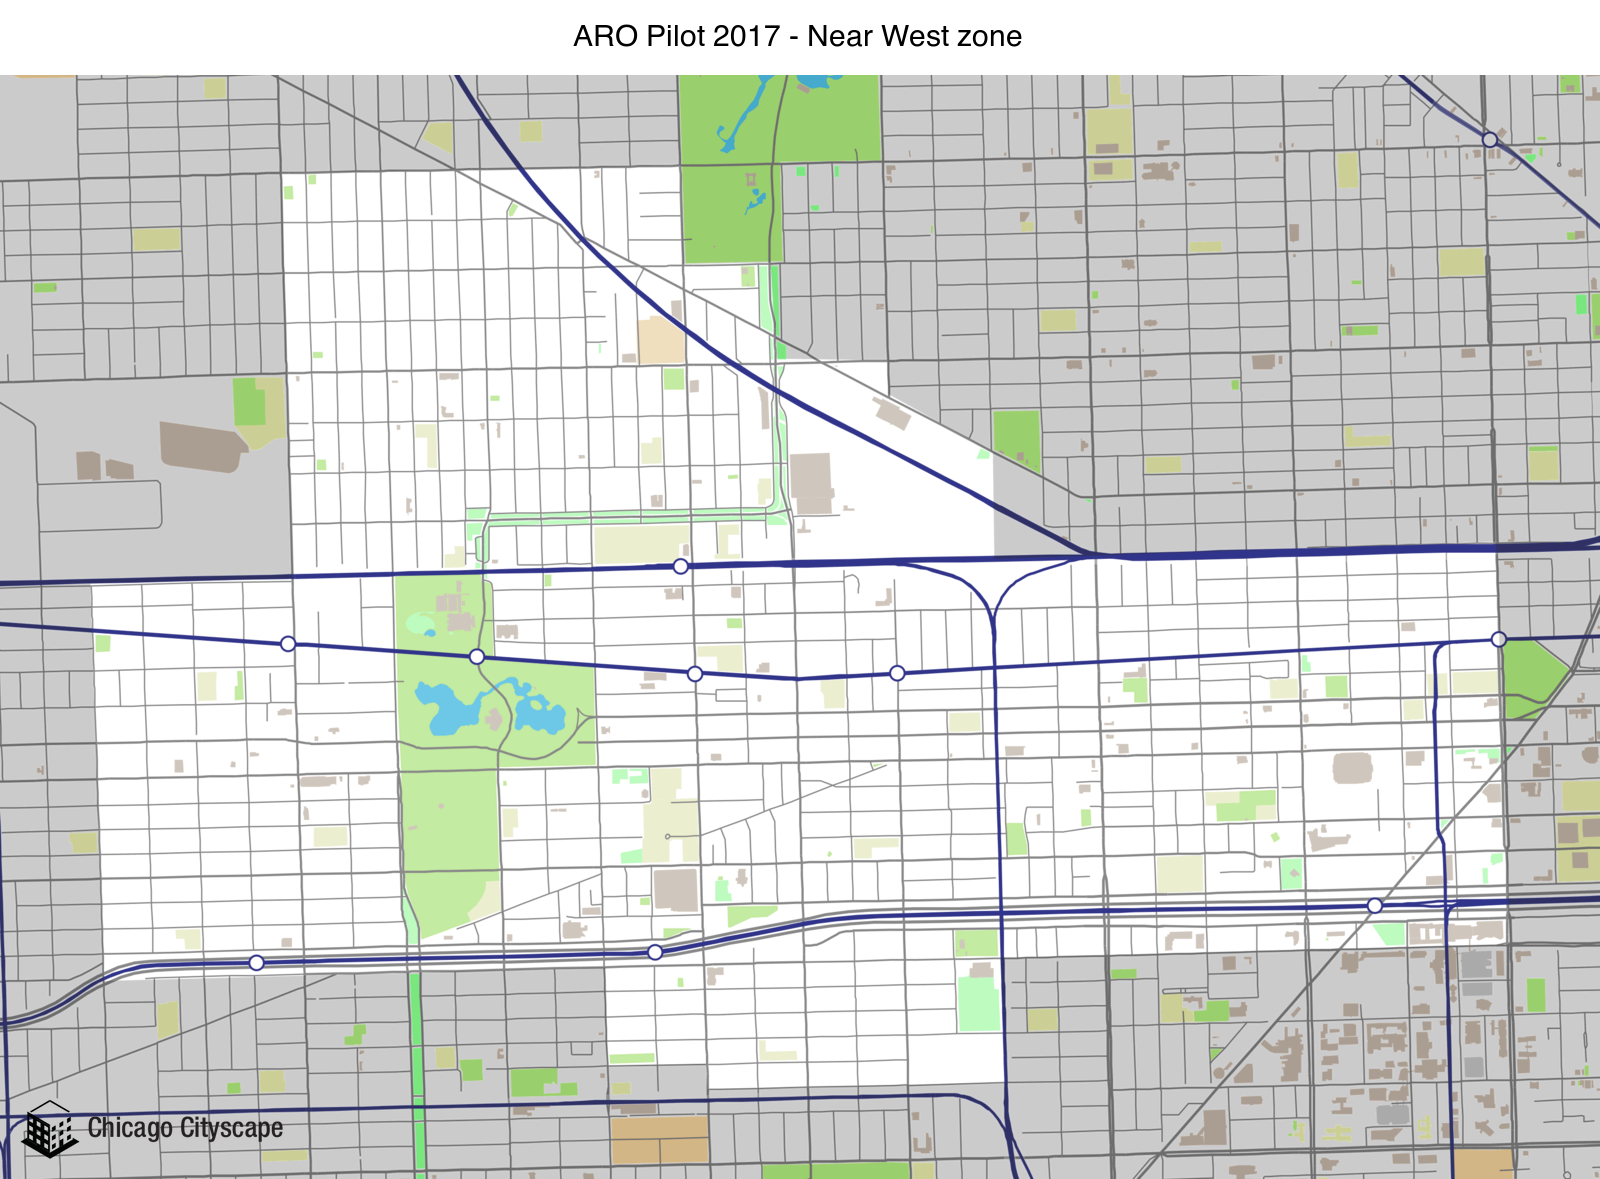 what you need to know about the aro pilot areas chicago Electronic Circuit Diagrams